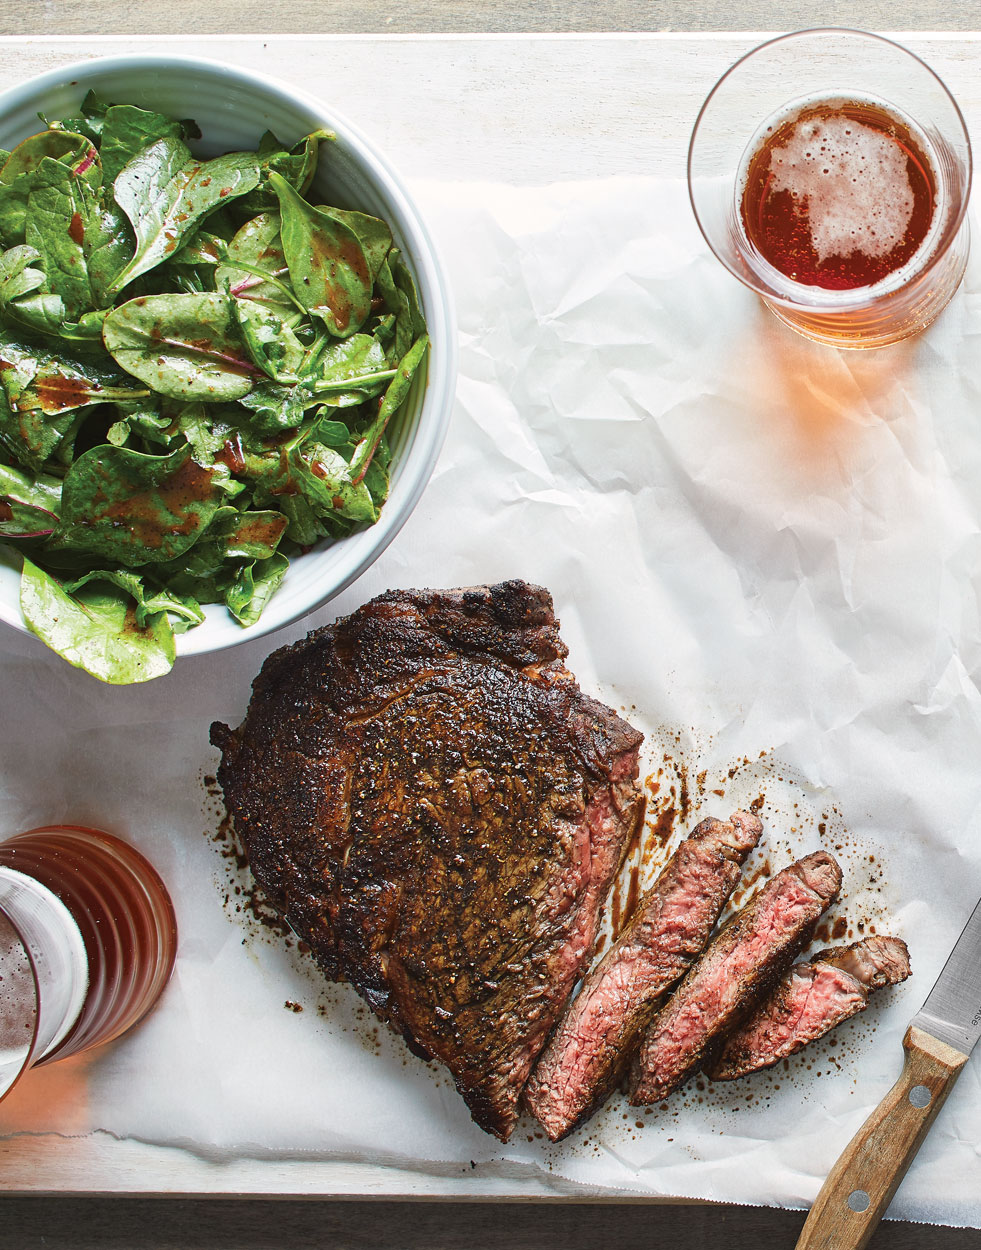 Coffee-Rubbed-Rib-Eye-and-Salad-with-Coffee-Balsamic-Vinaigrette-Lead